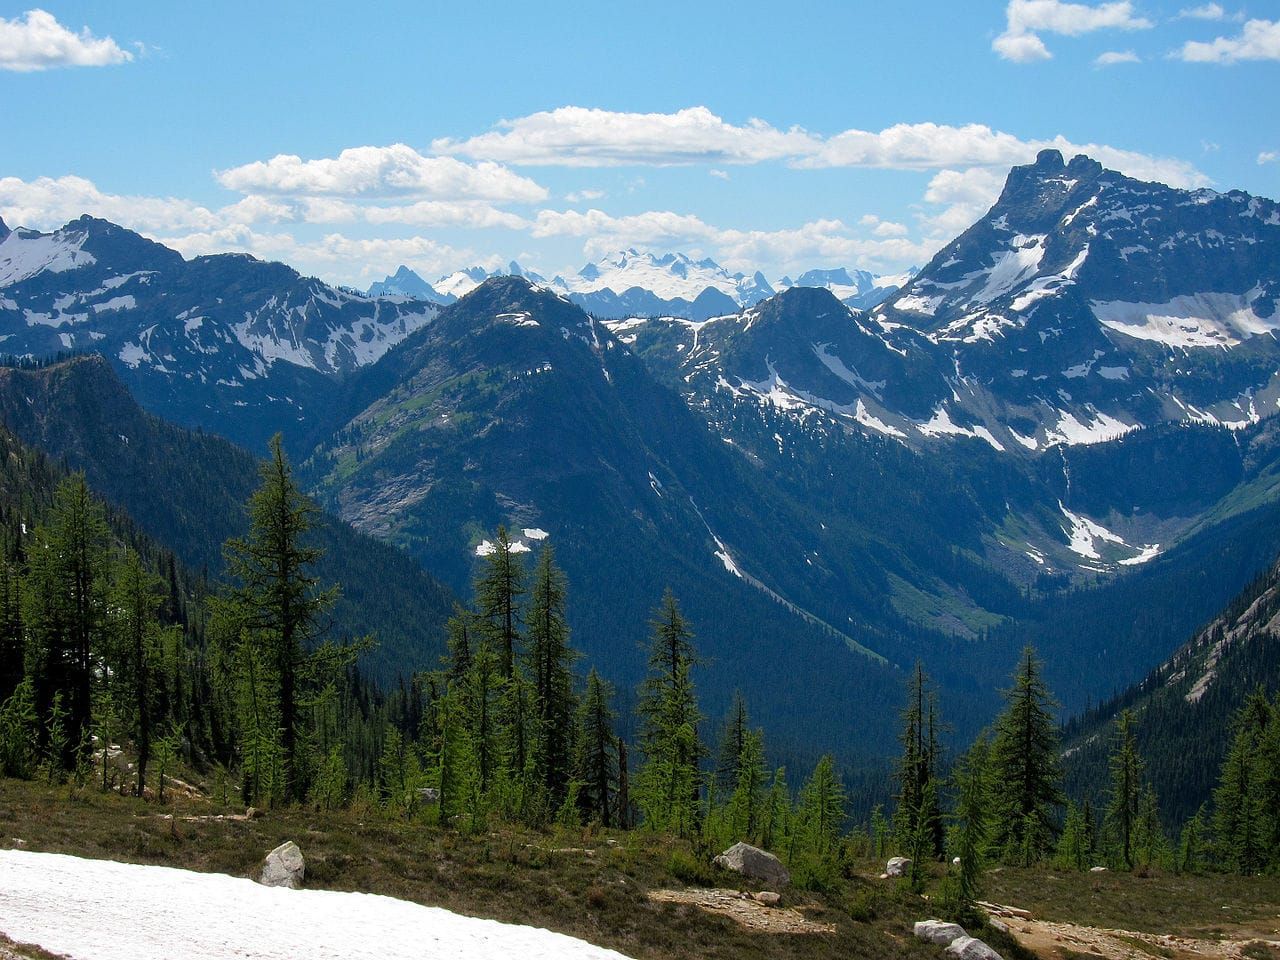 Pacific Crest Trail by Miguel Vieira wikimedia commons